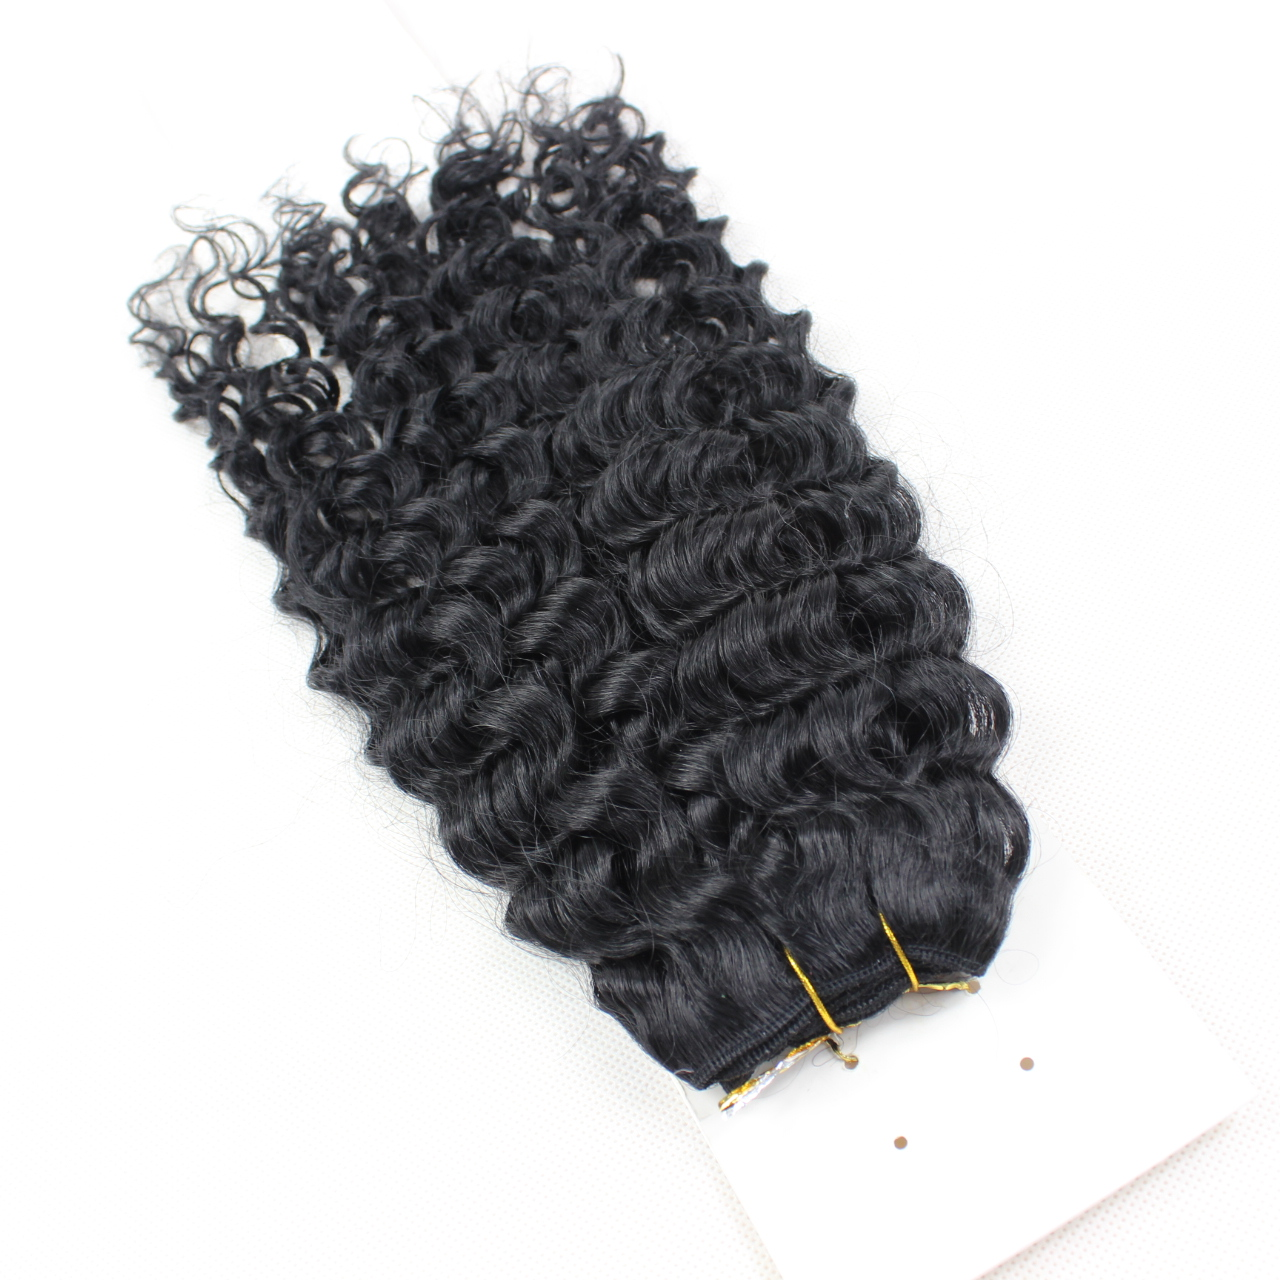 Peruvian virgin human hair bundles with lace closure, 100% Unprocessed Raw Virgin cuticle aligned hair weave HN245